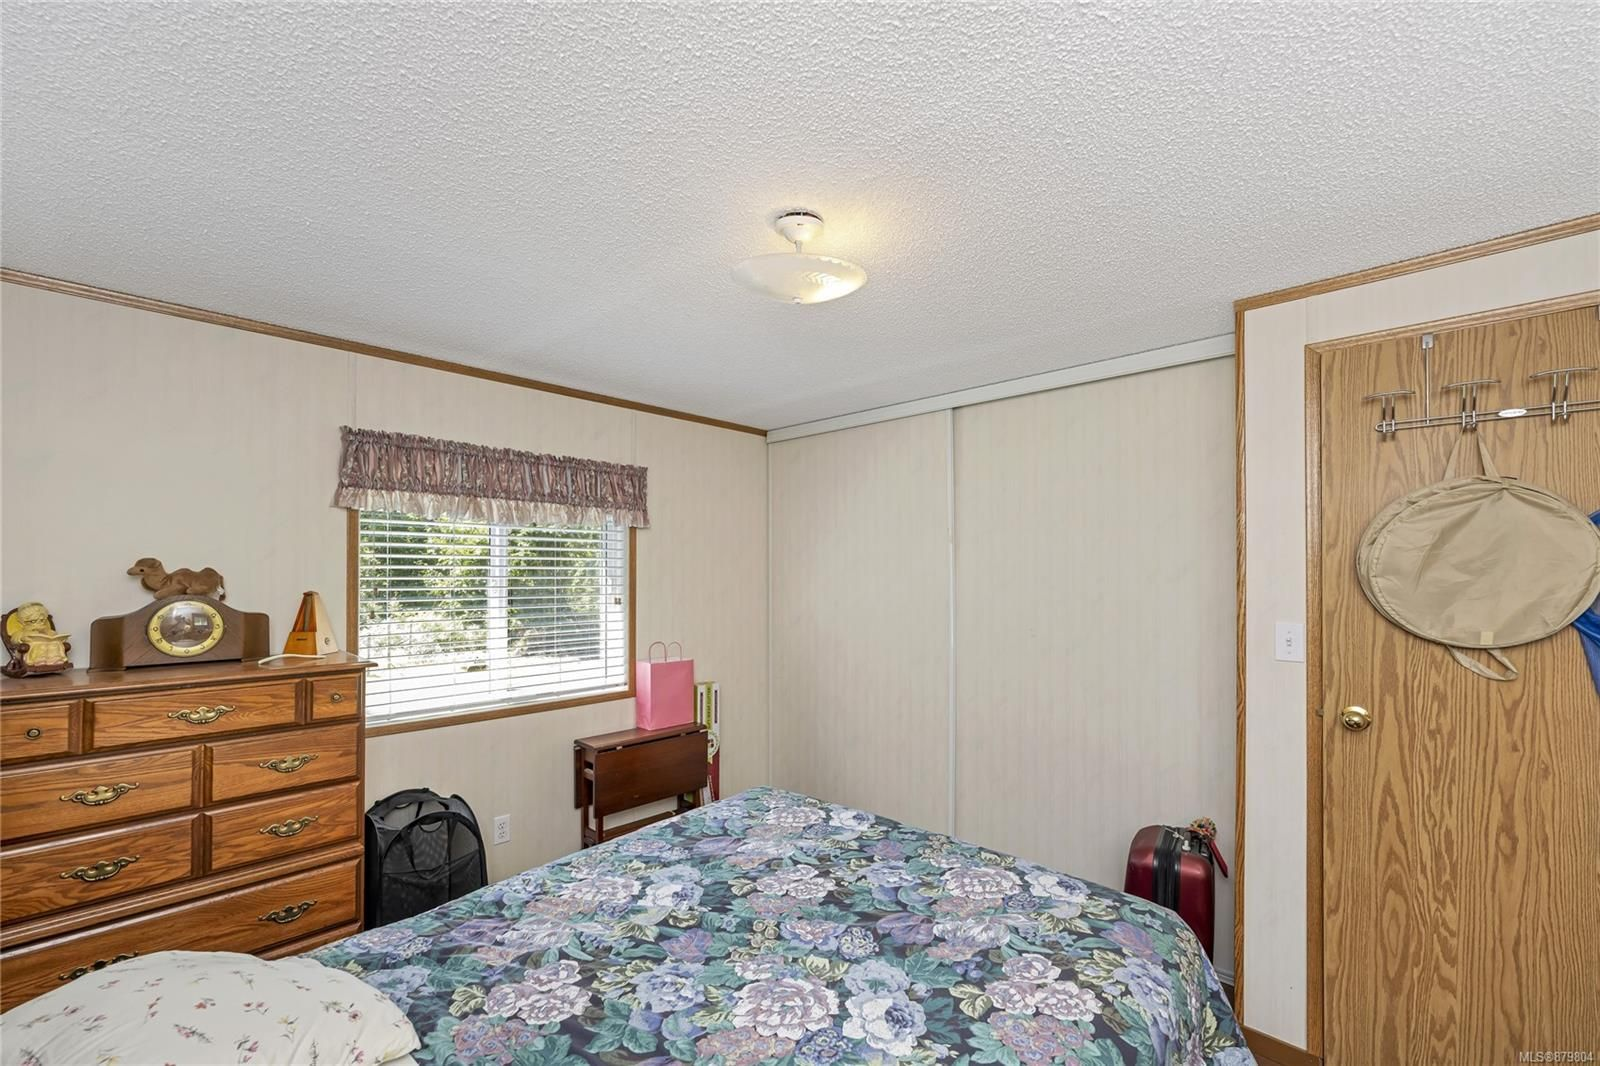 Photo 34: Photos: 3596 Riverside Rd in : ML Cobble Hill Manufactured Home for sale (Malahat & Area)  : MLS®# 879804